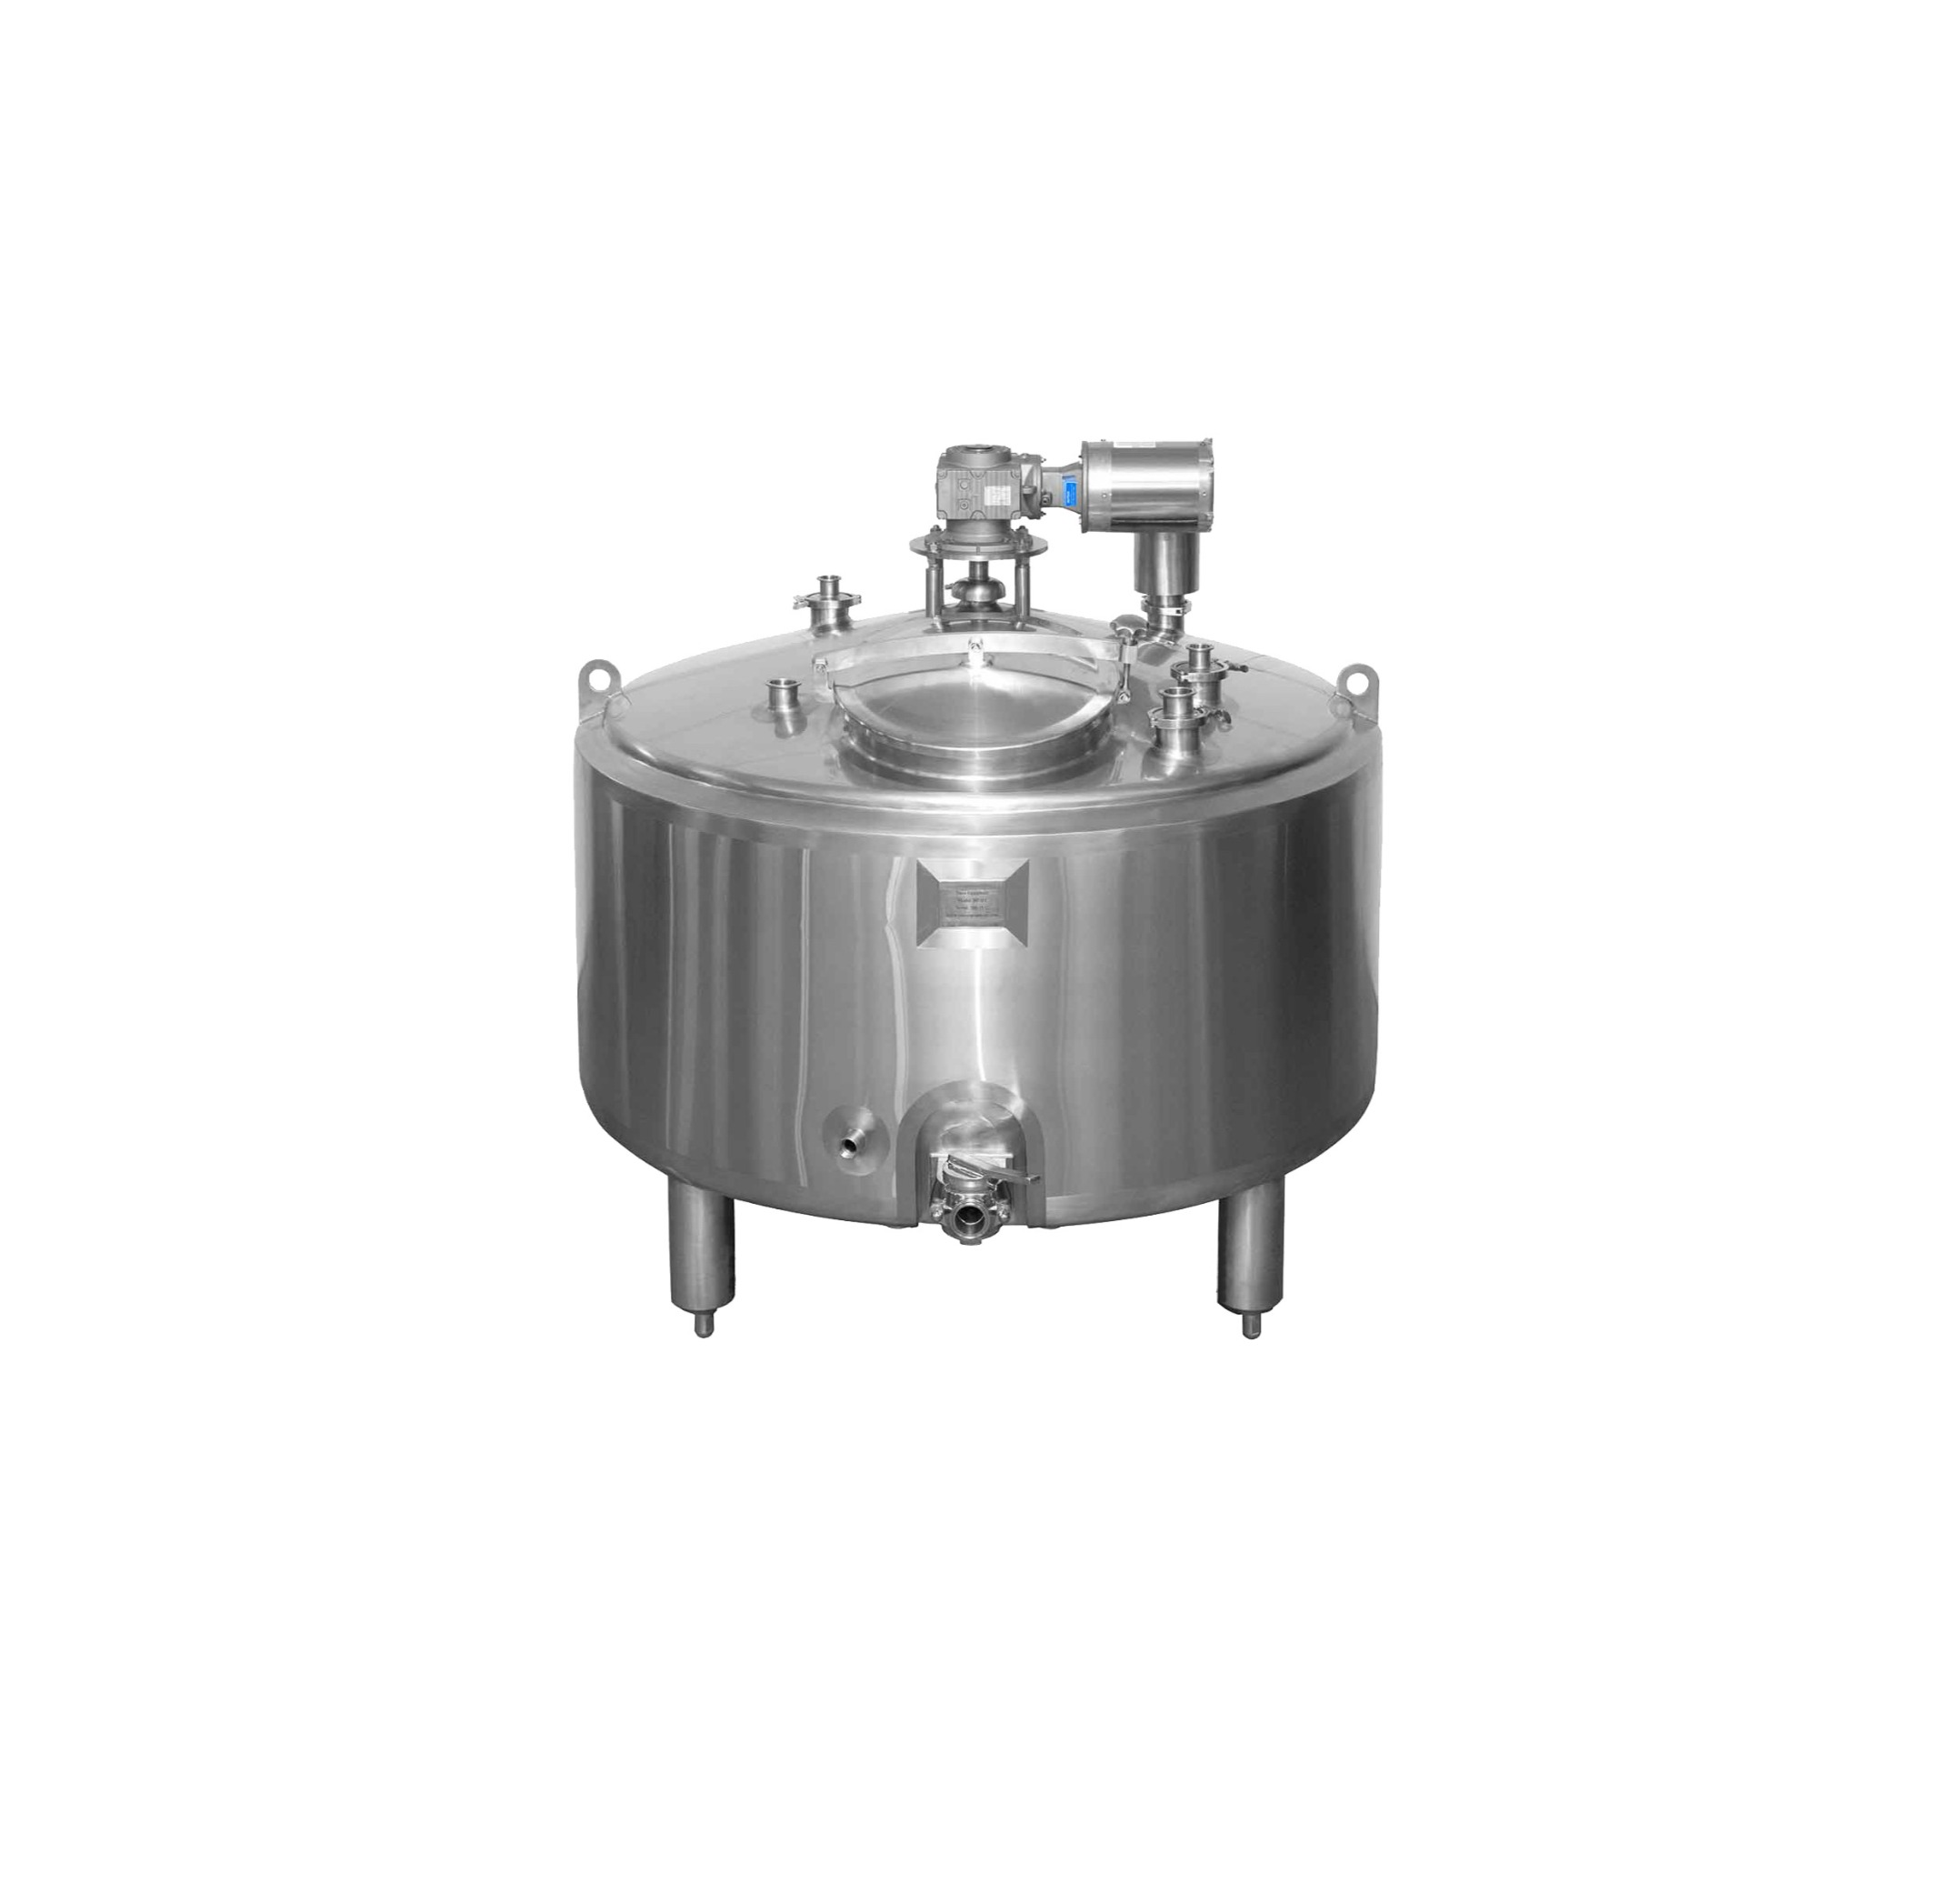 Dome Top Batch Pasteurizer